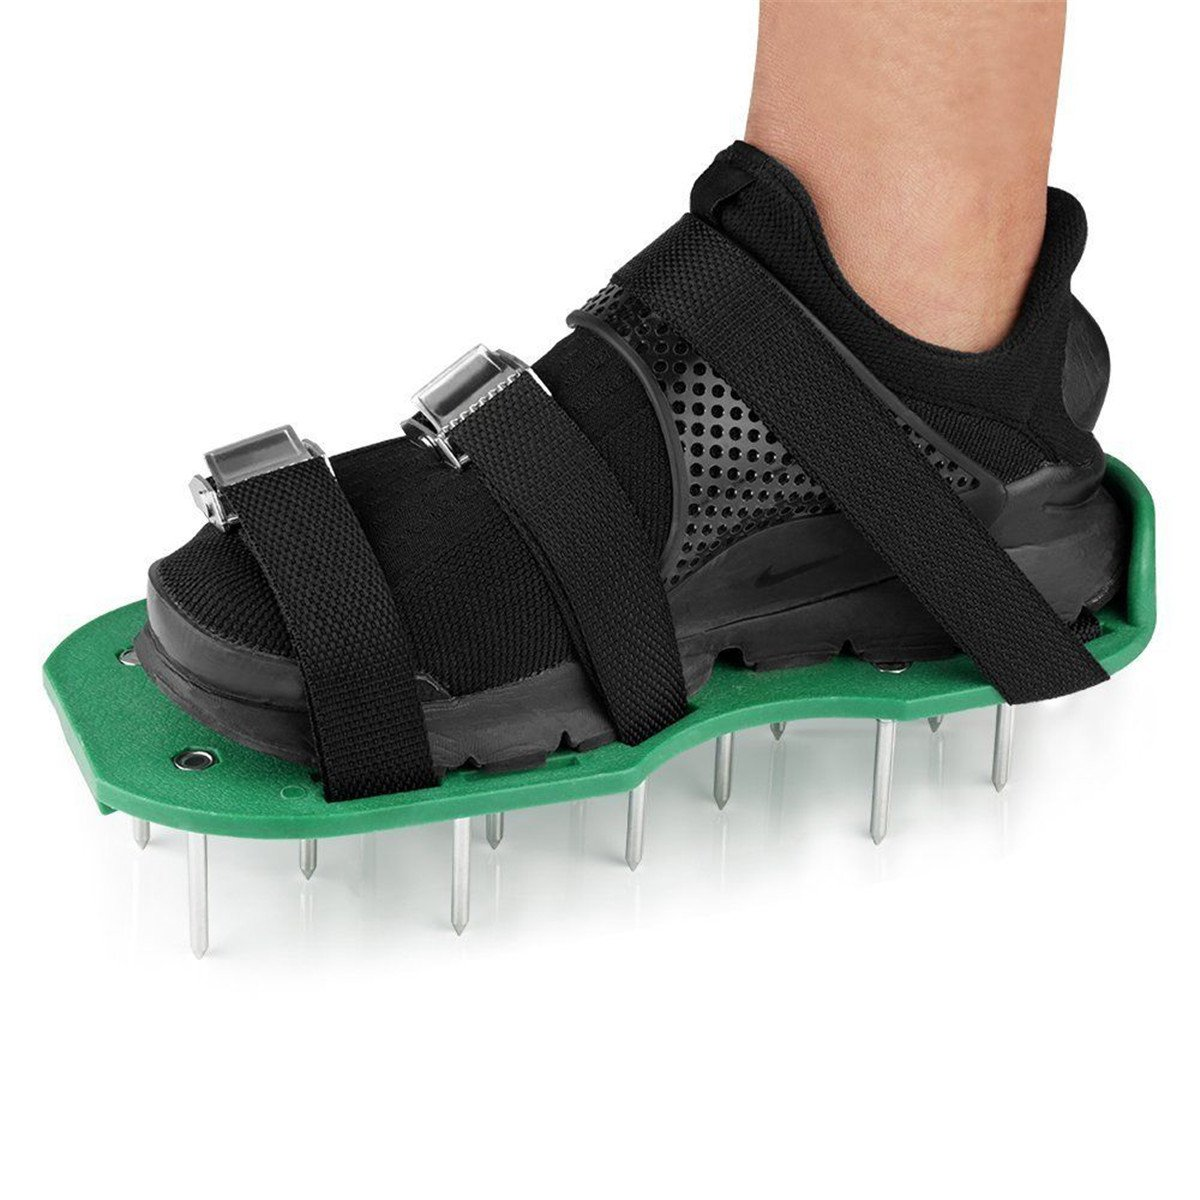 ECYC Lawn Aerator Shoes Garden Spiked Sandals Shoes with Adjustable Straps